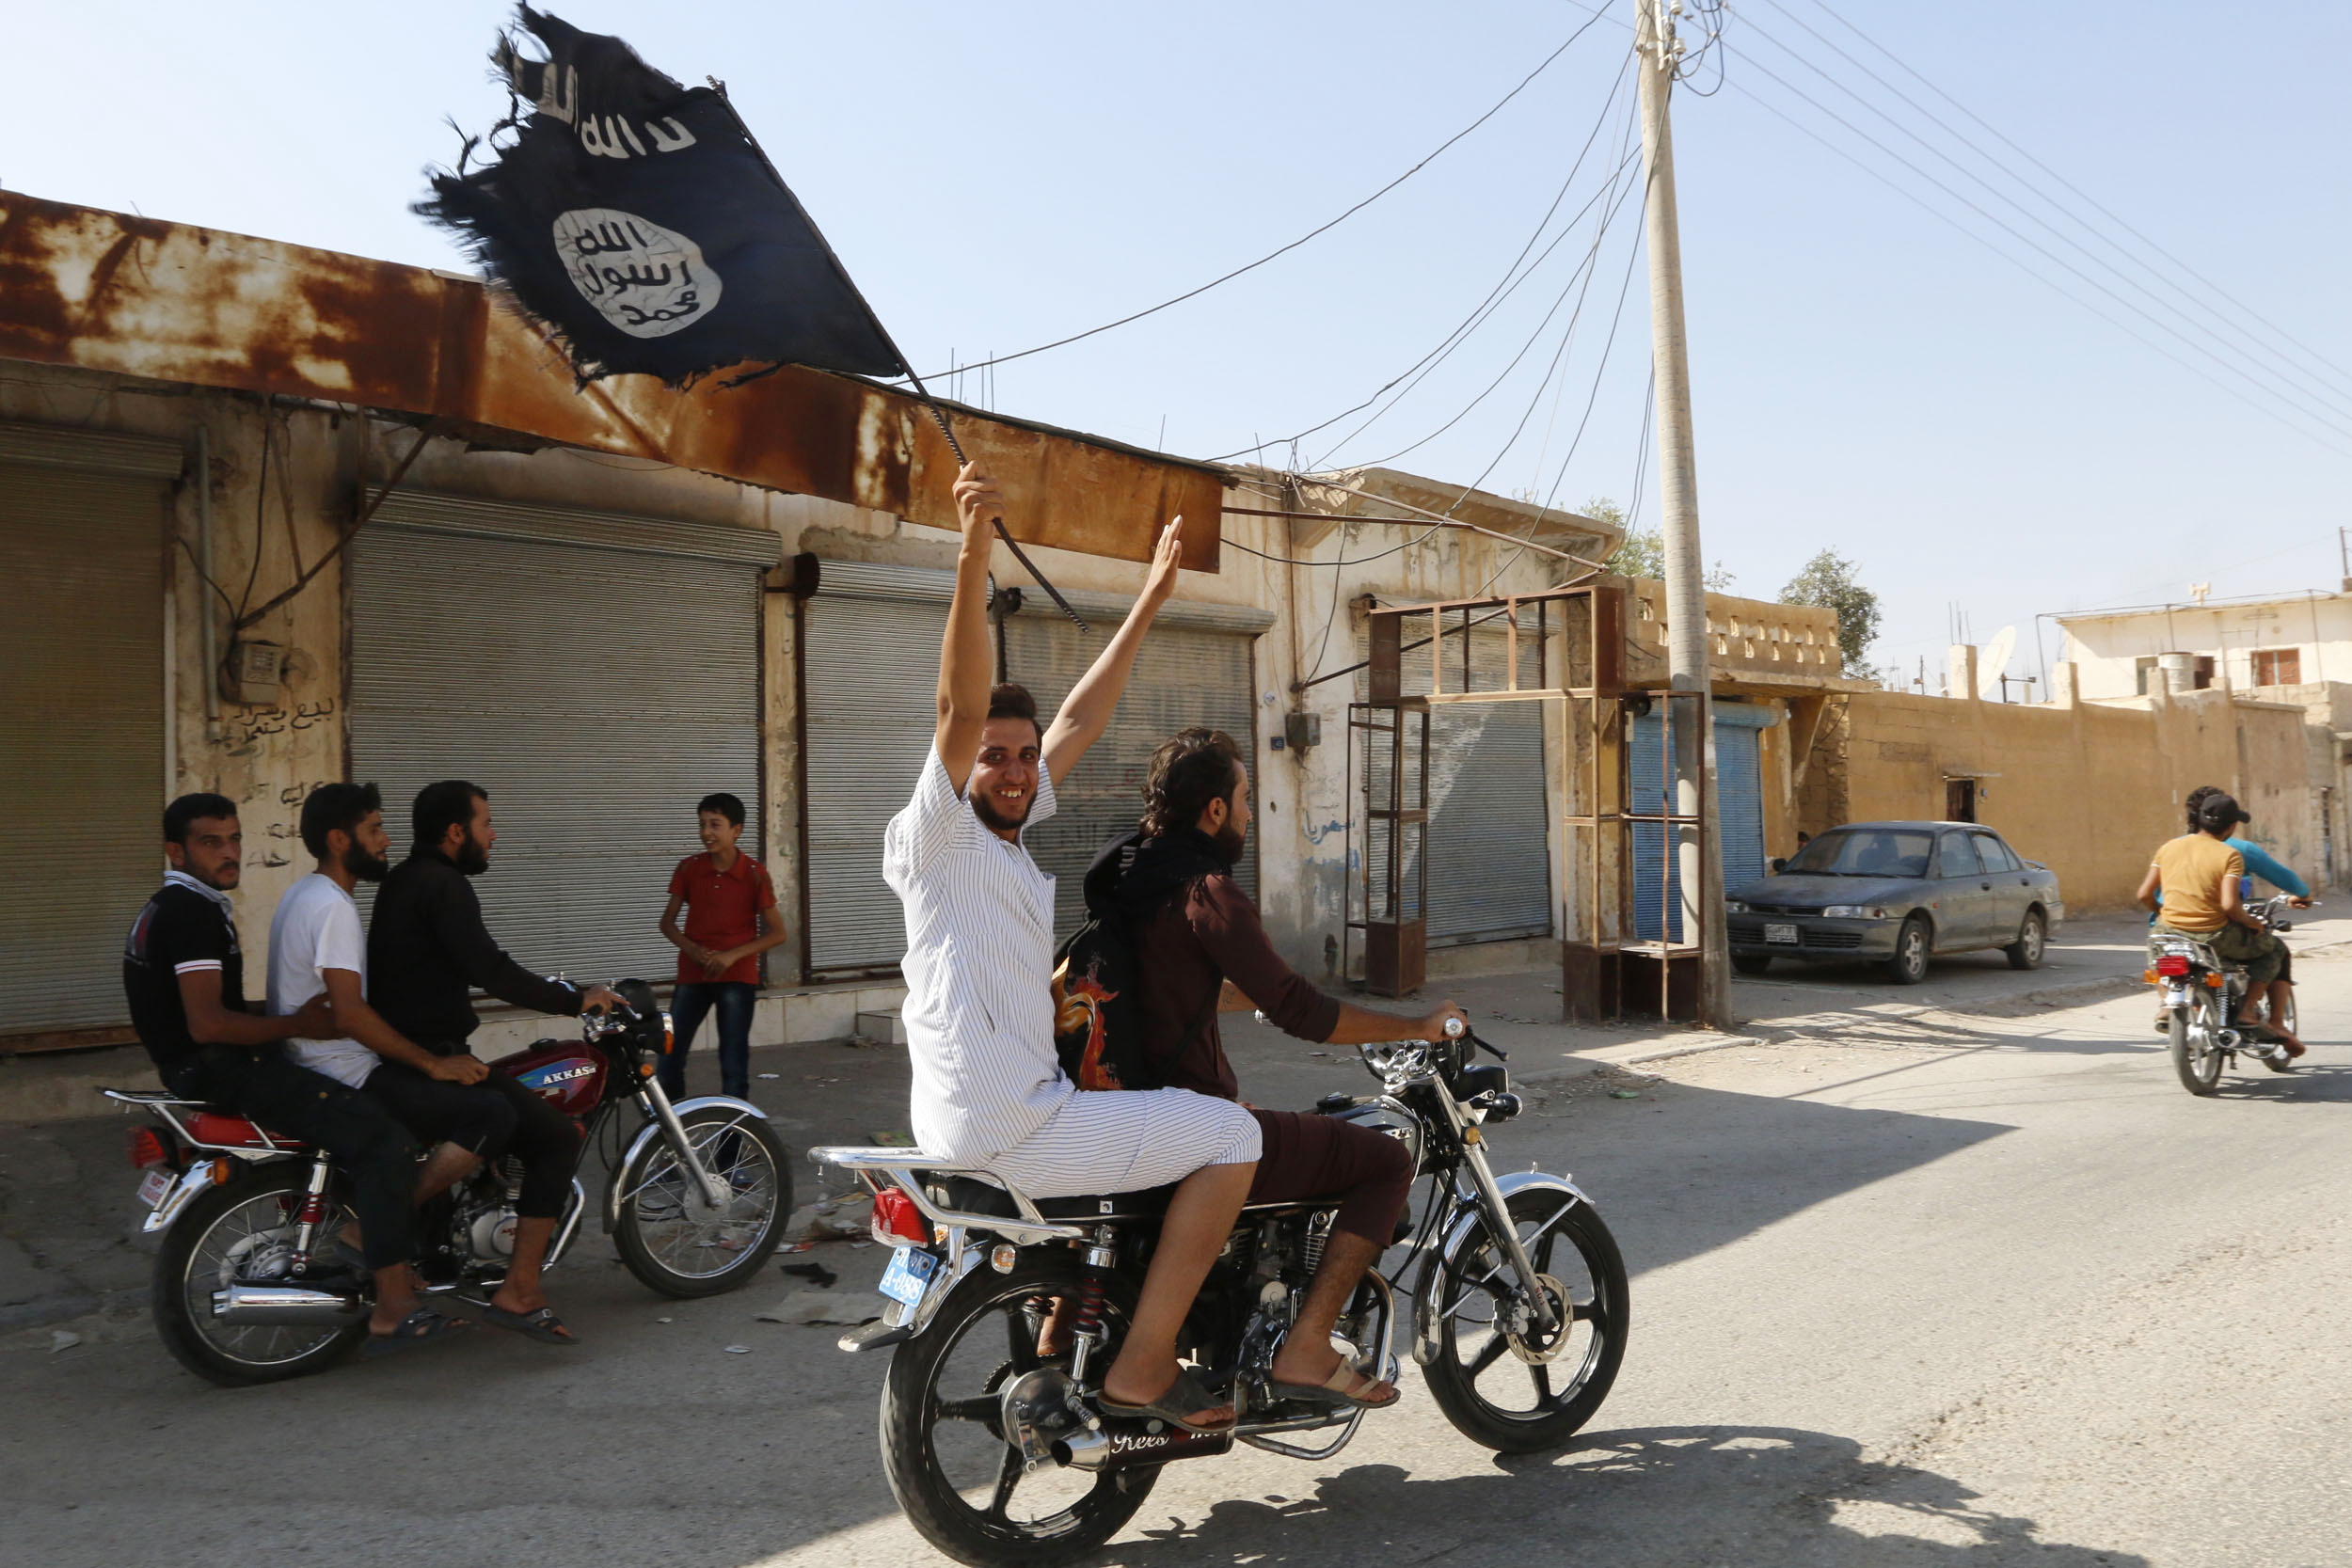 A resident of Tabqa city touring the streets on a motorcycle celebrates after Islamic State of Iraq and Greater Syria militants took over Tabqa air base, in the nearby Syrian city of Raqqa on  Aug. 24, 2014